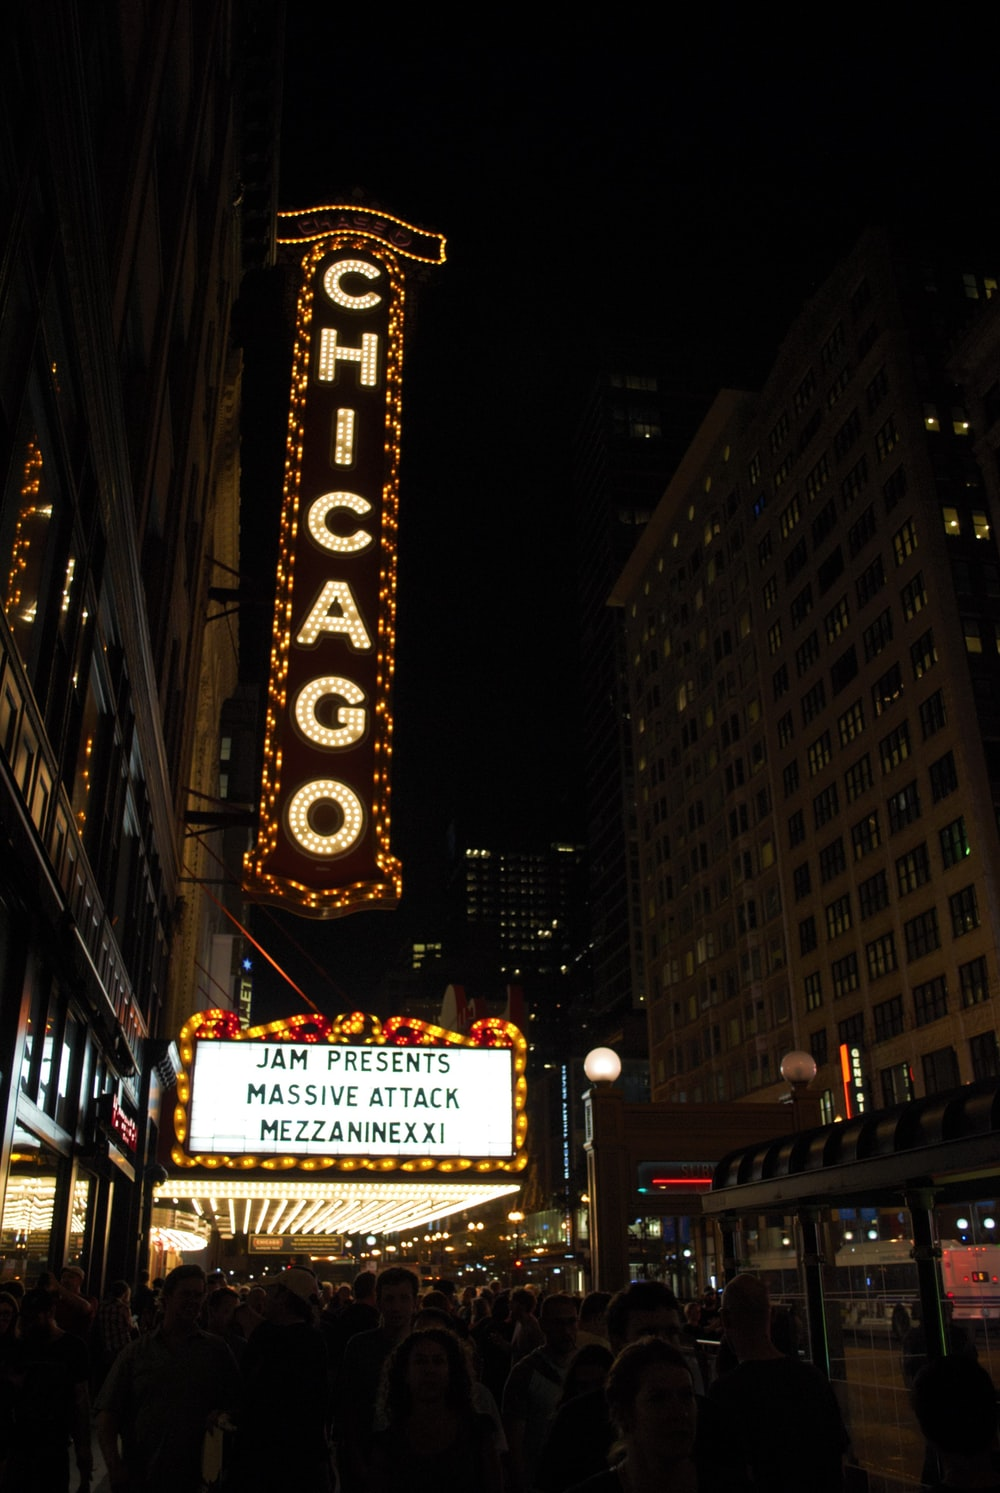 Chicago signage on wall